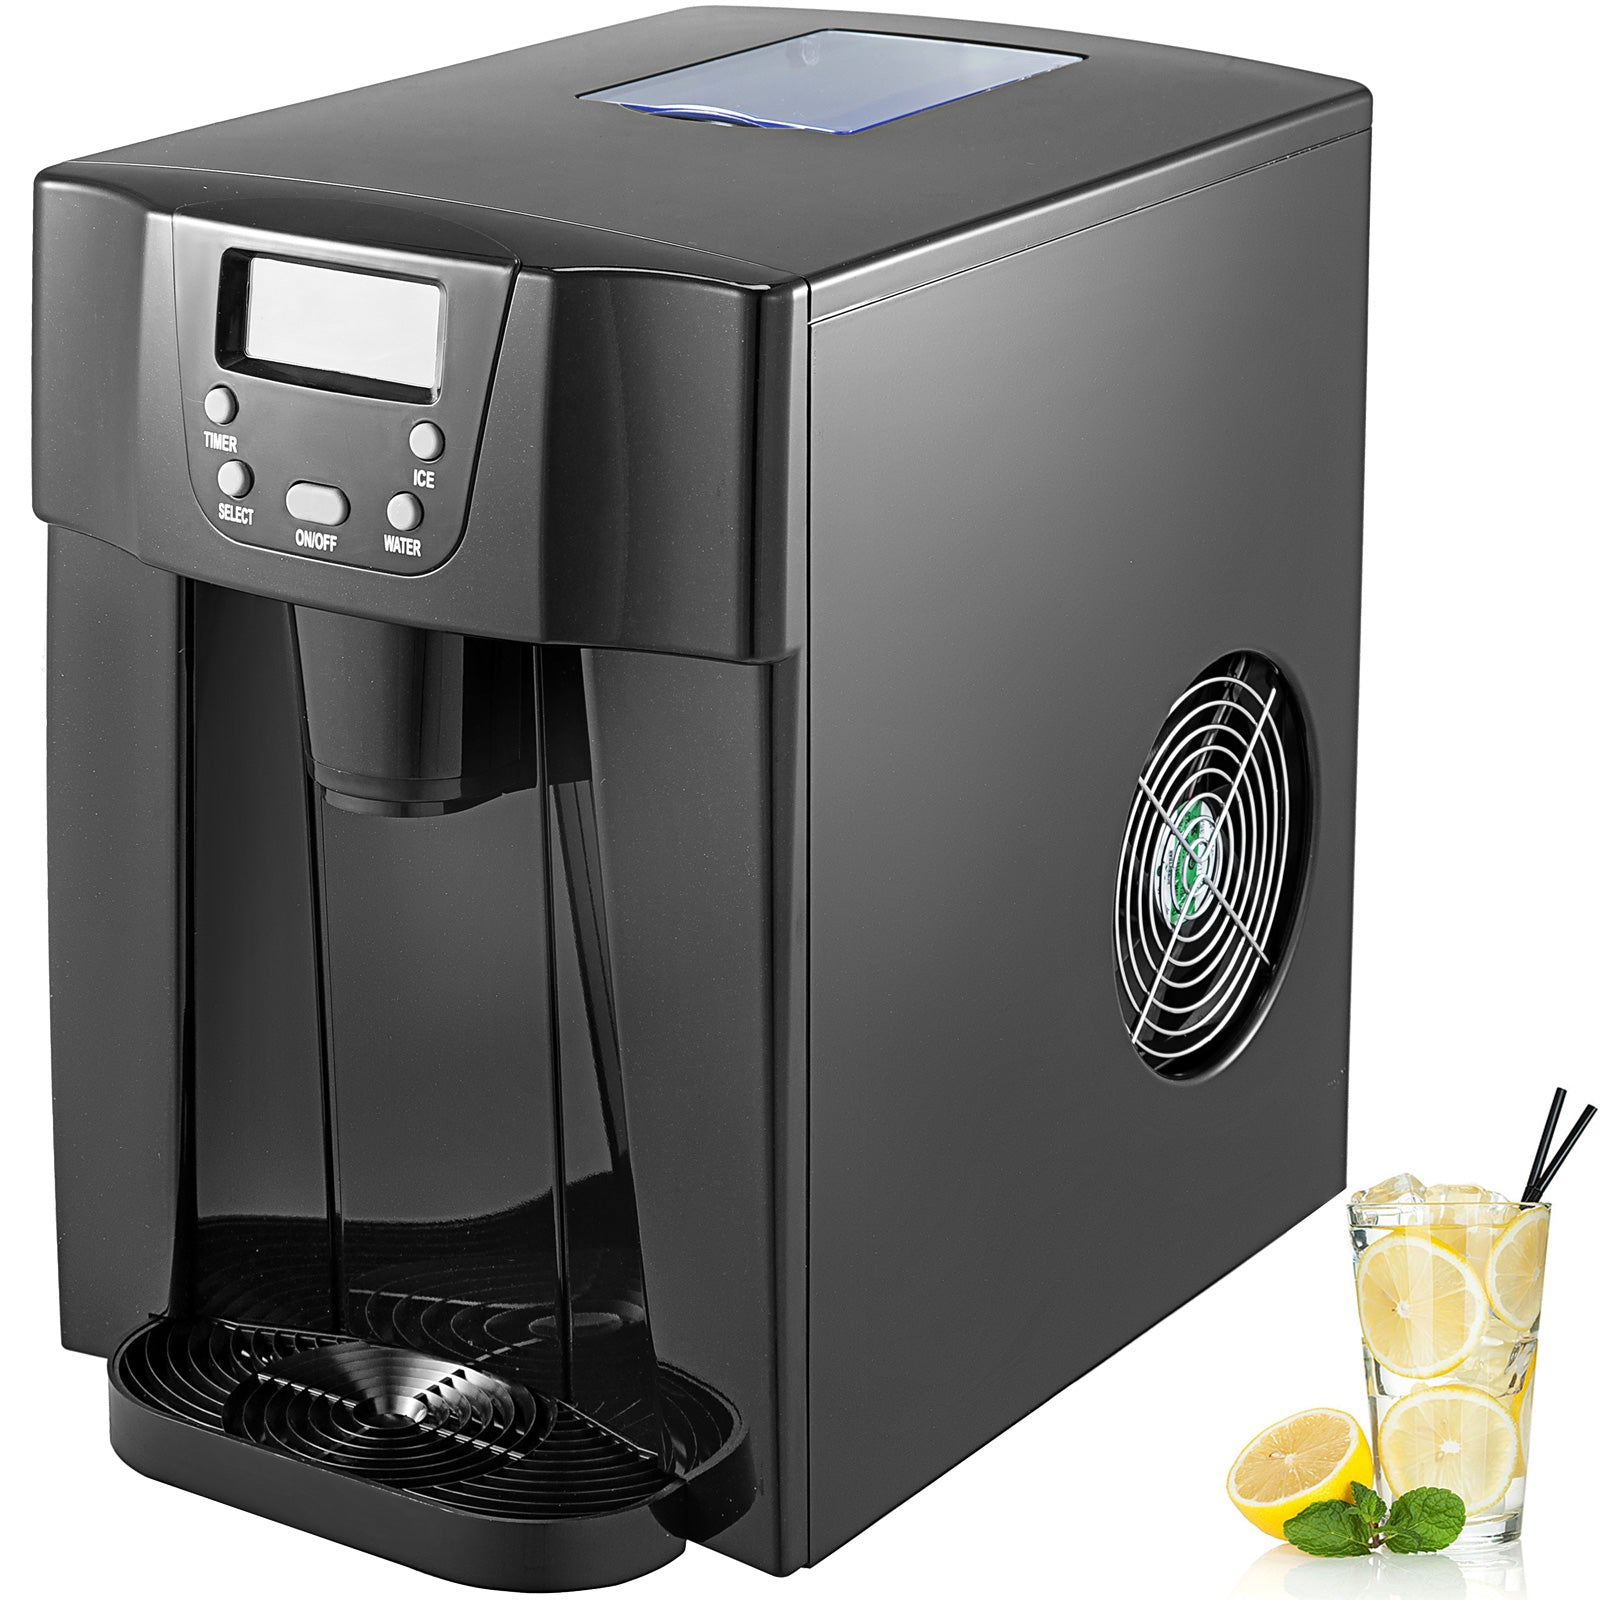 3 In 1 Countertop Ice Maker 12kg/26ibs Black Kitchen Cold Water Dispenser Bar